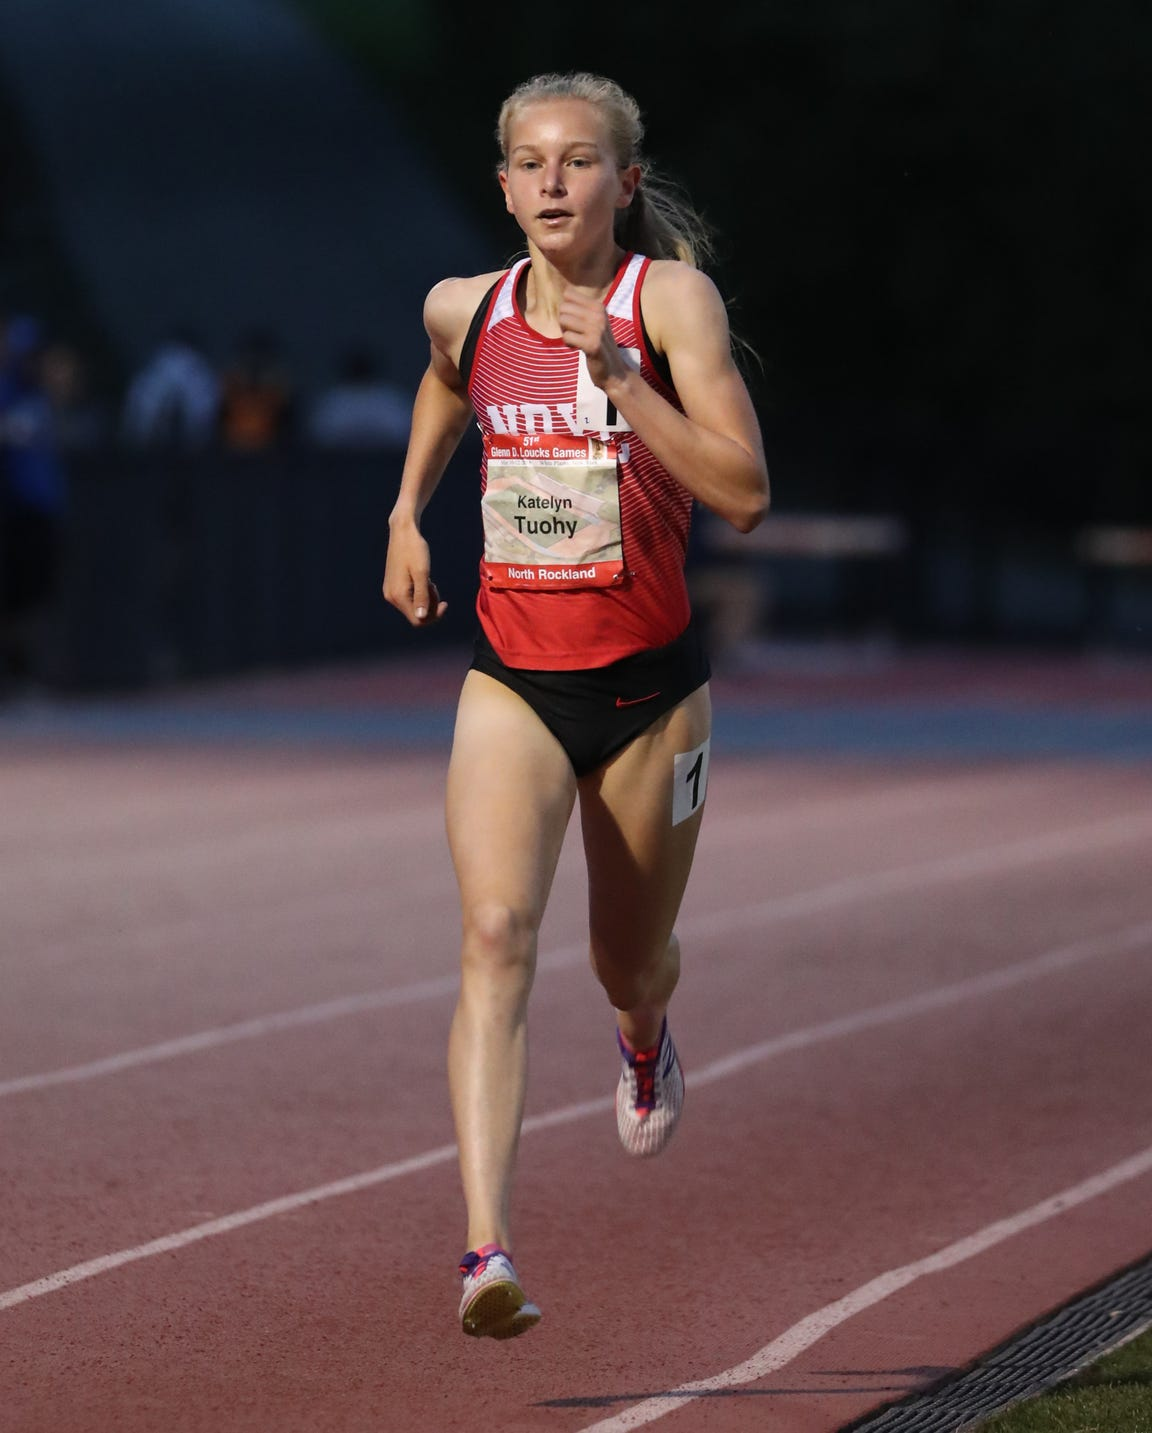 North Rockland's Katelyn Tuohy won the 3,200-meter run during the second day of the Loucks Games track and field invitational at White Plains High School May 9, 2018.